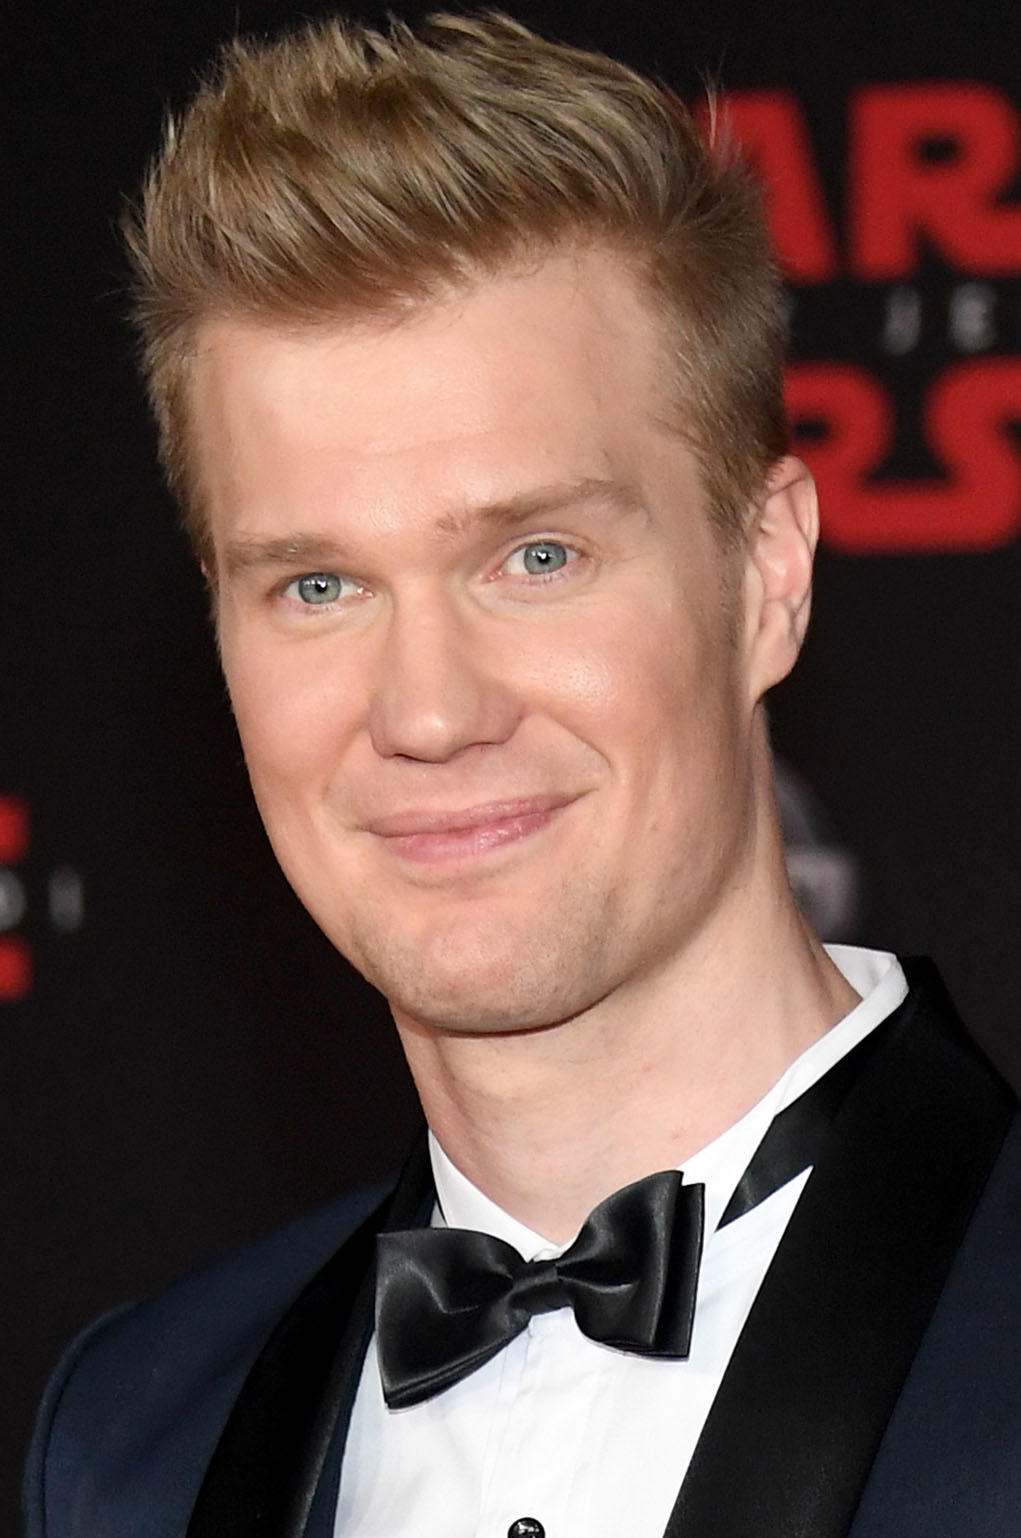 Joonas Suotamo at the premiere of